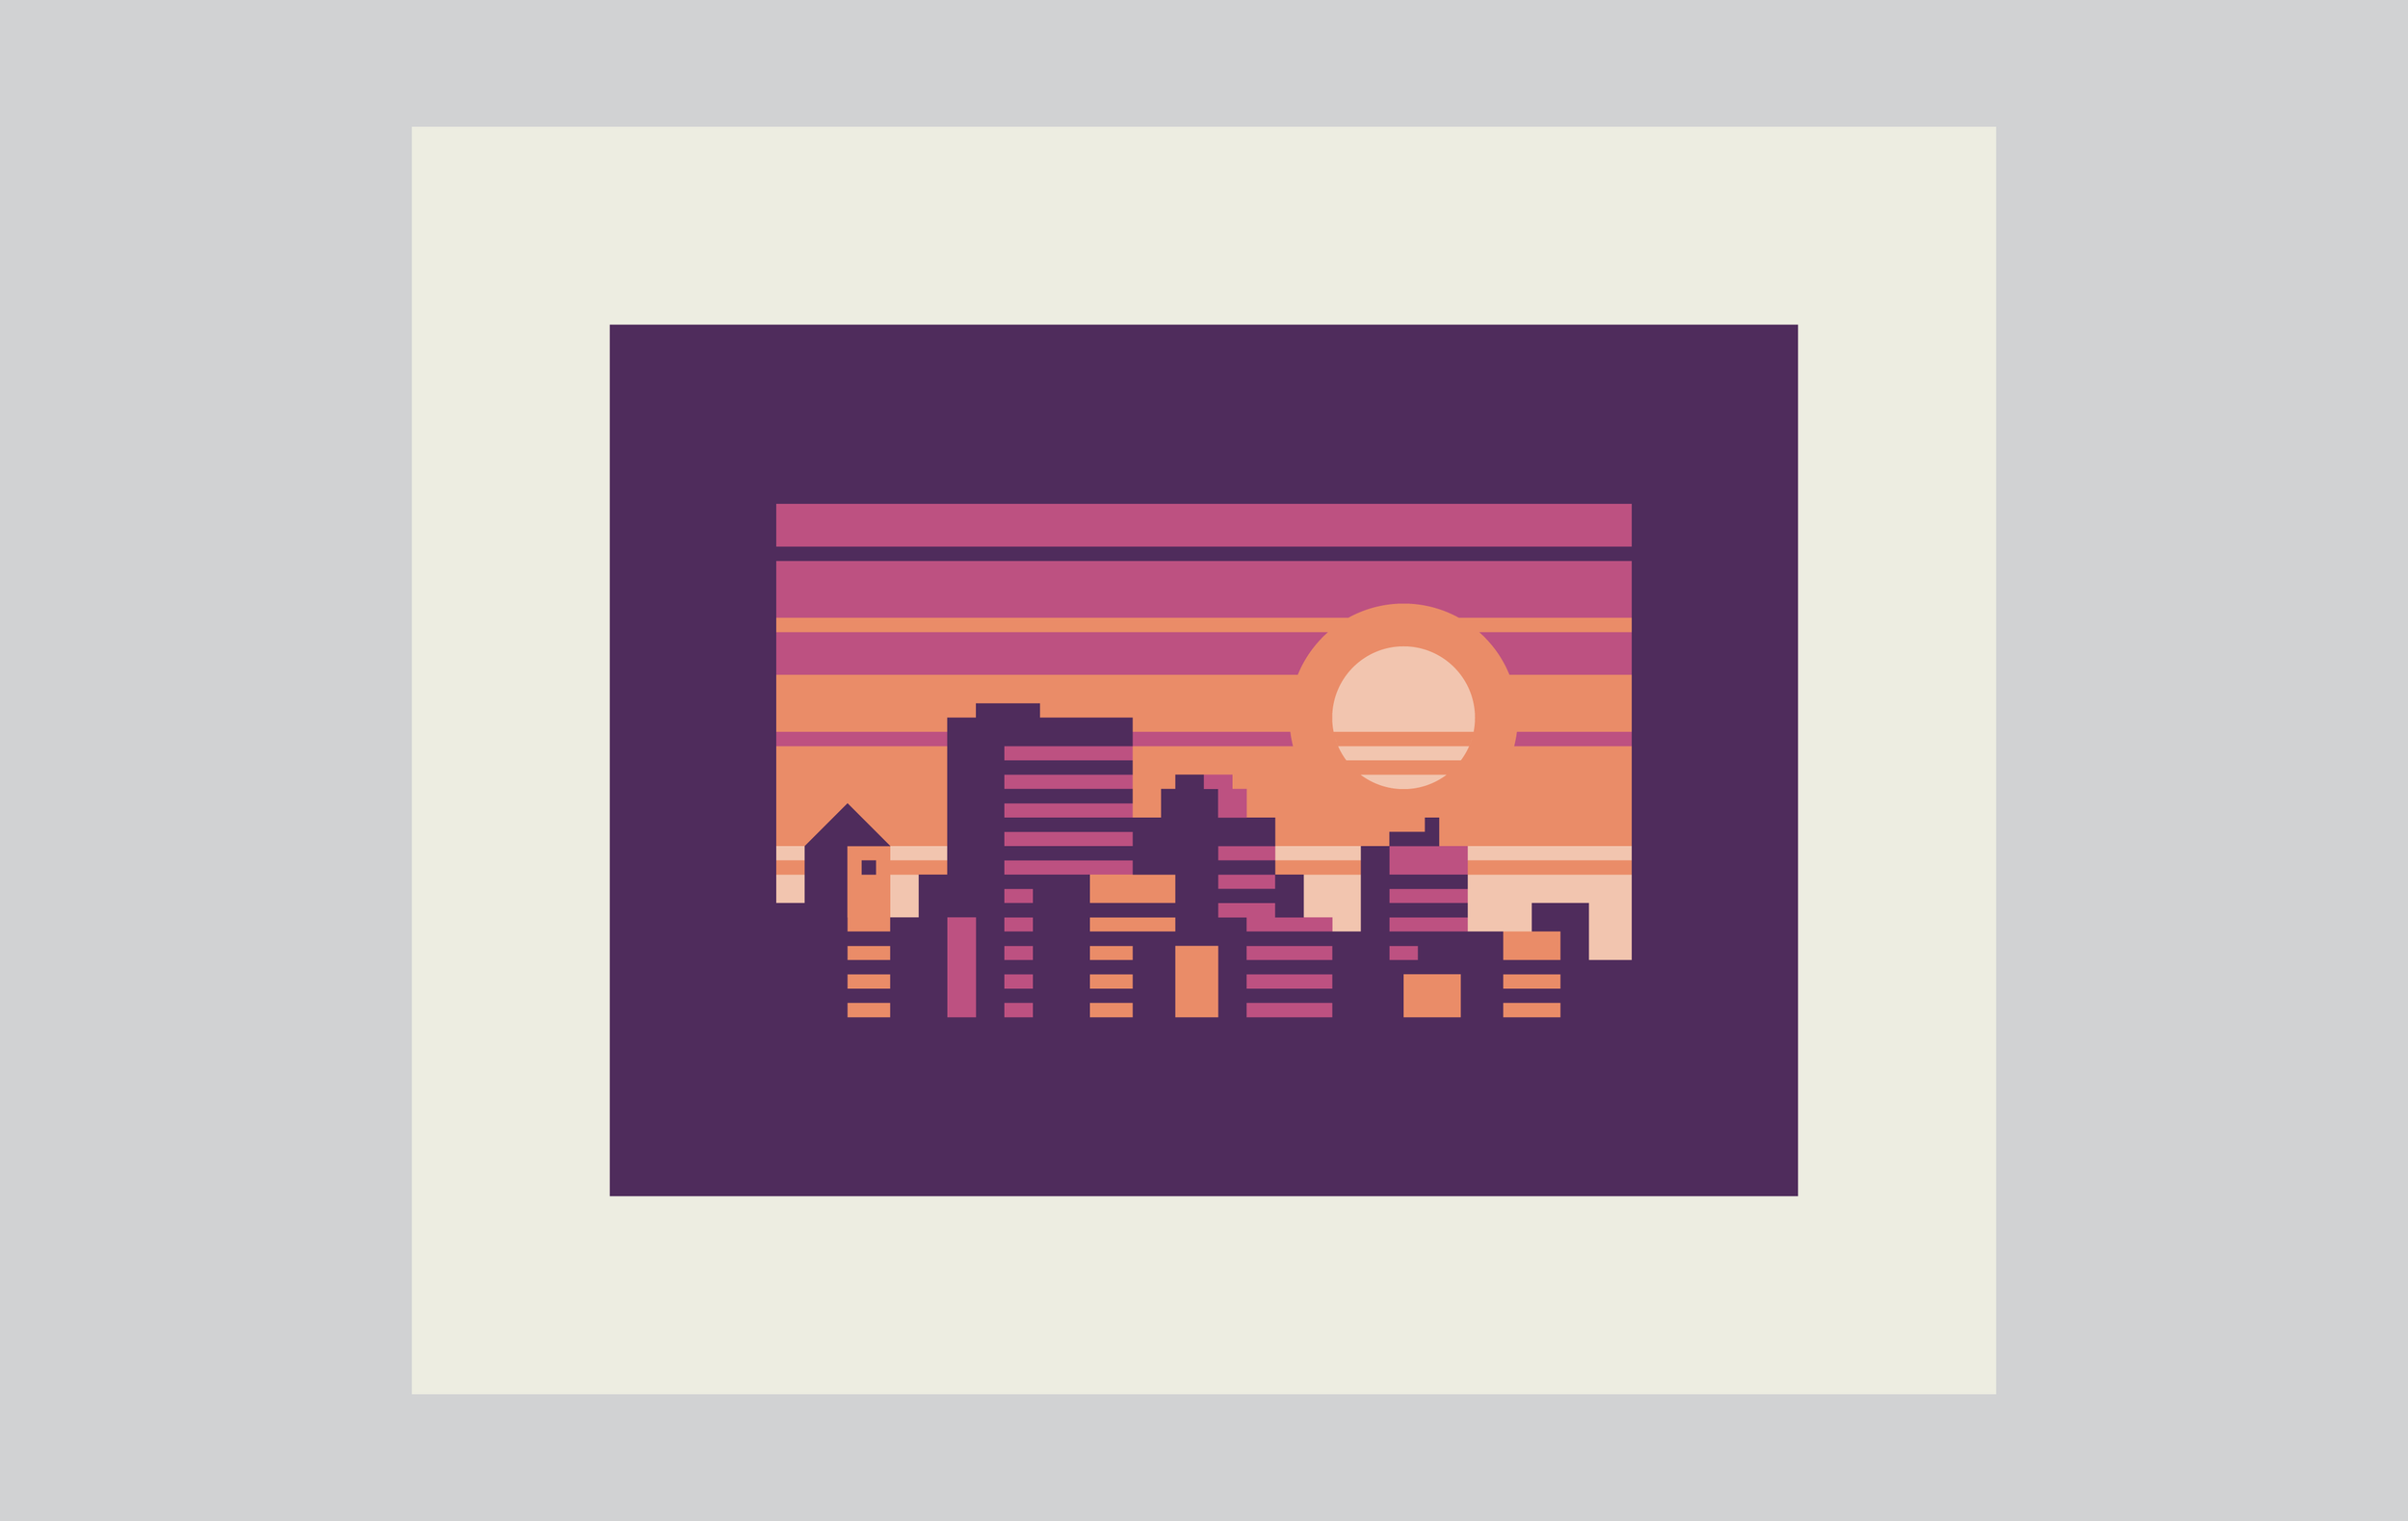 Abstract Cities: Ametrine design by Matt Anderson and Canopy Design. Limited color, geometric city skyline.